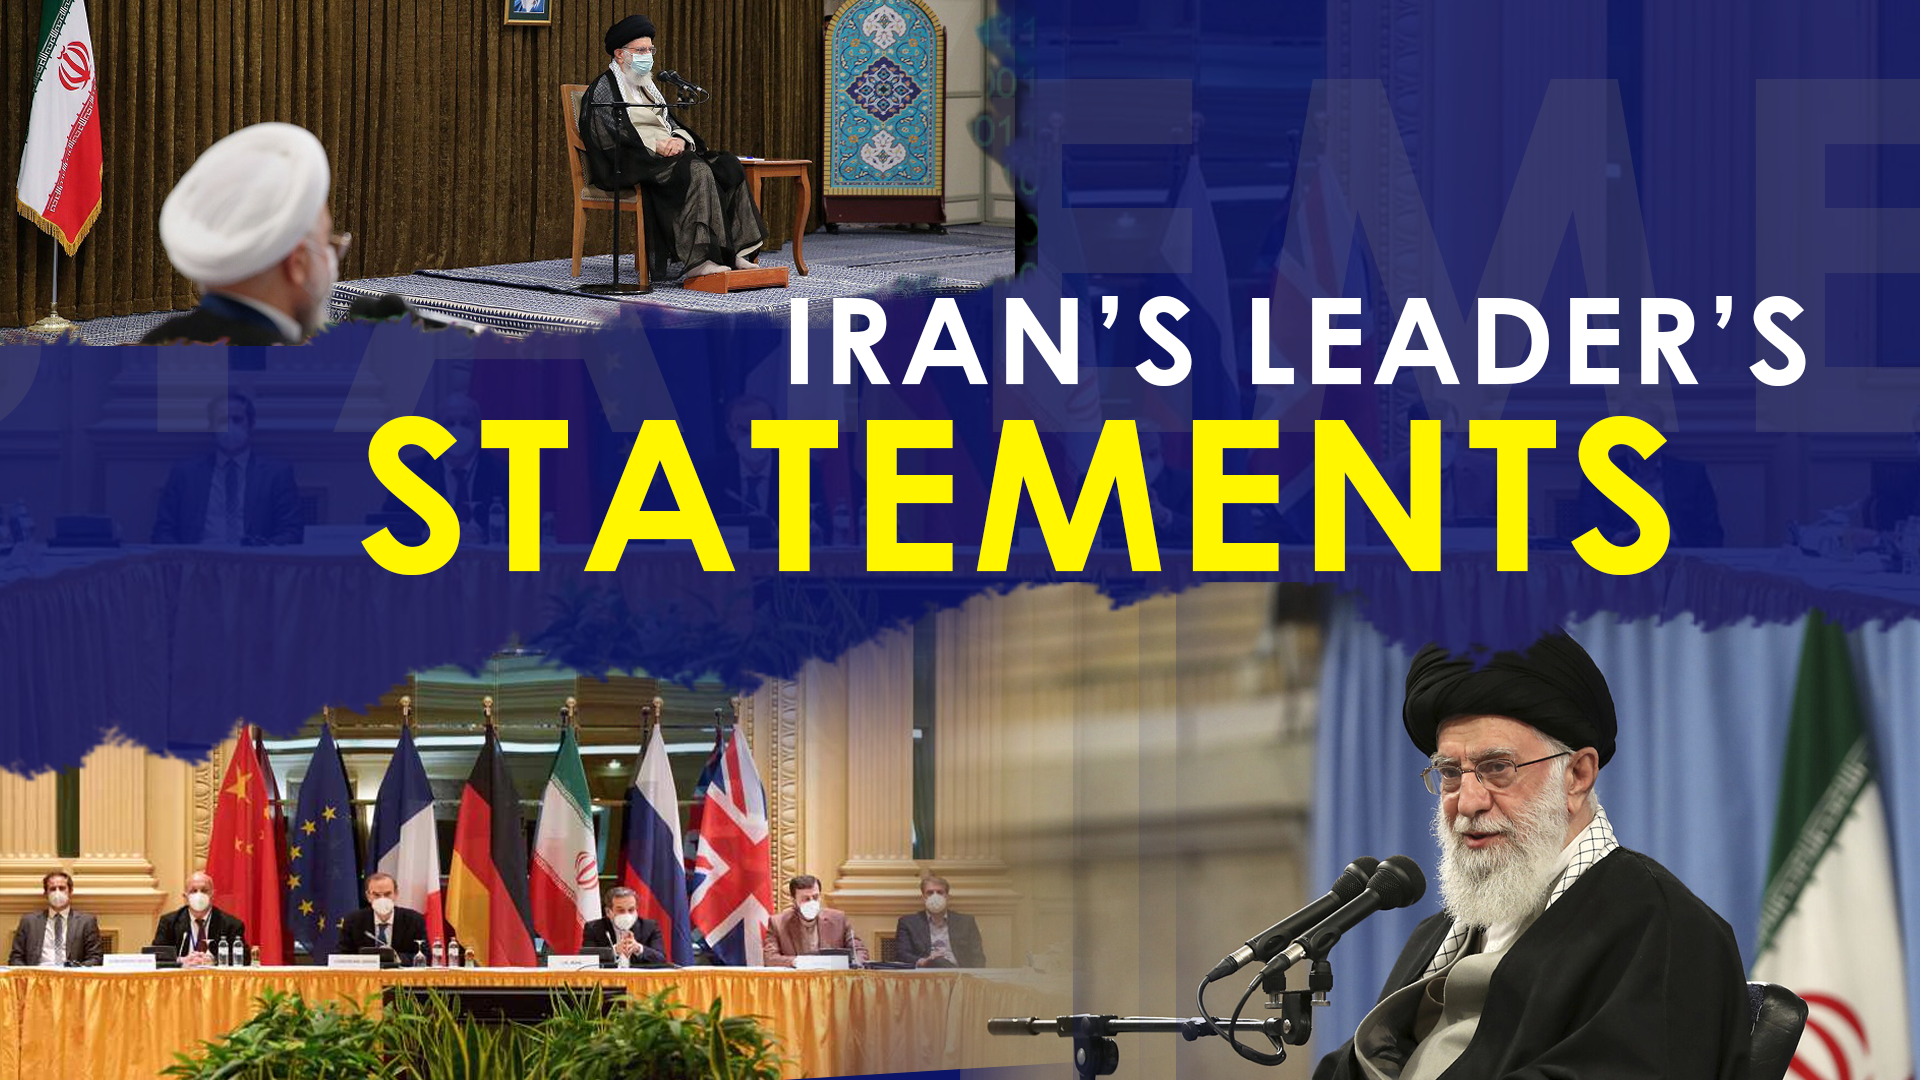 Iran's Leader: US can't be trusted